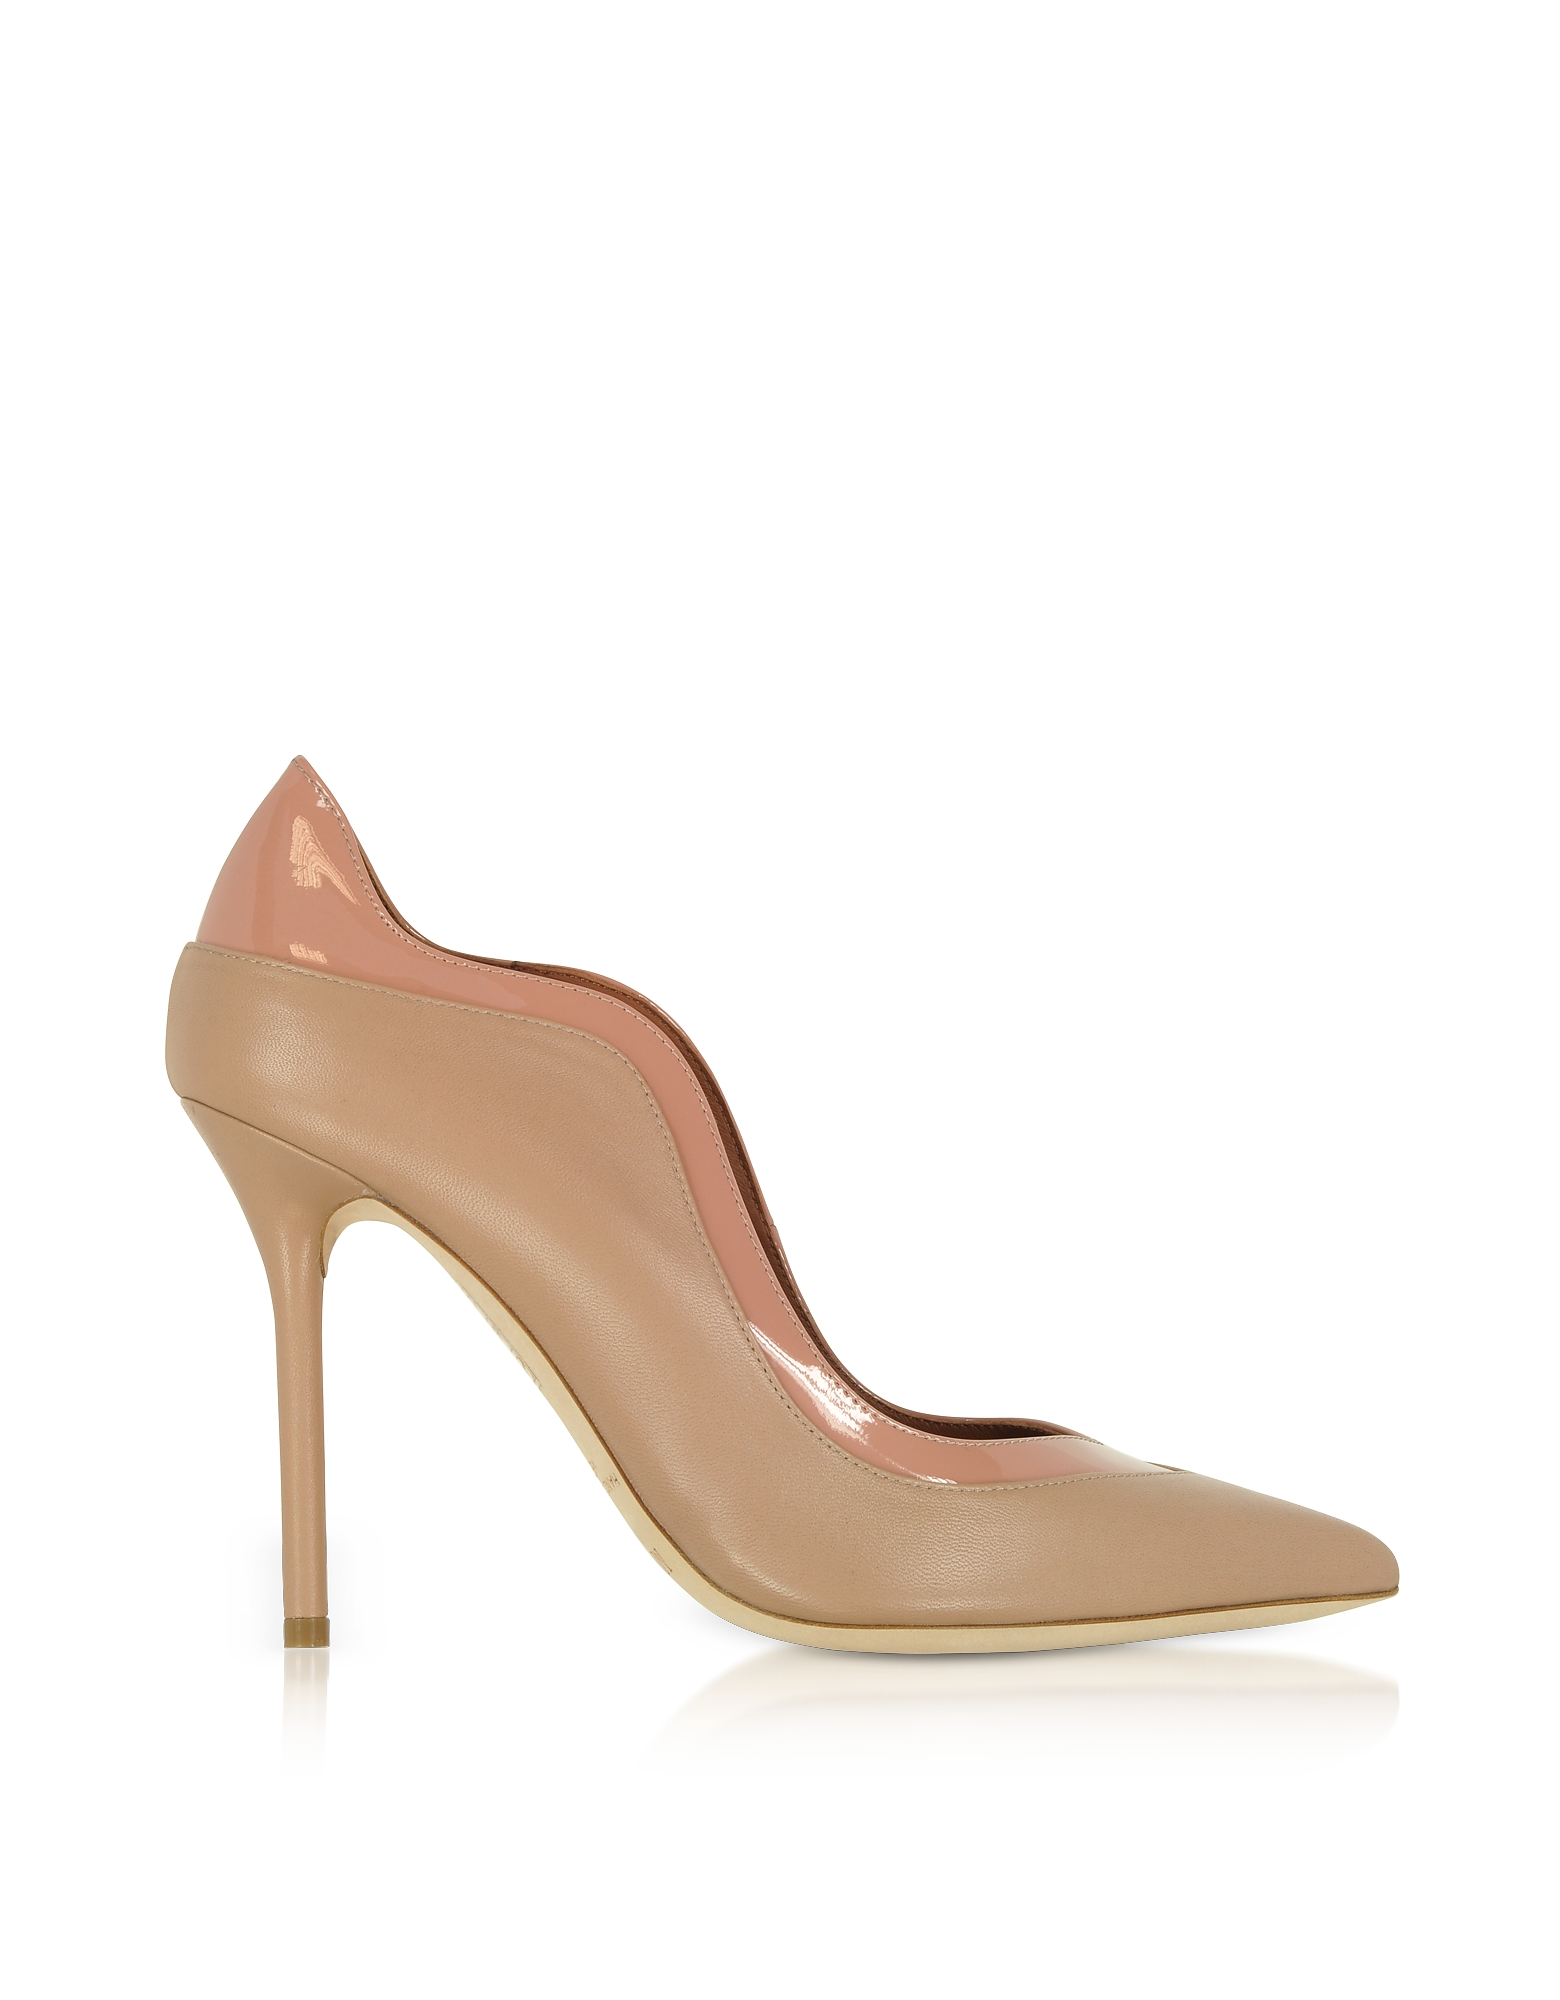 Malone Souliers by Roy Luwolt Shoes, Penelope Nude and Blush Nappa Leather Pumps